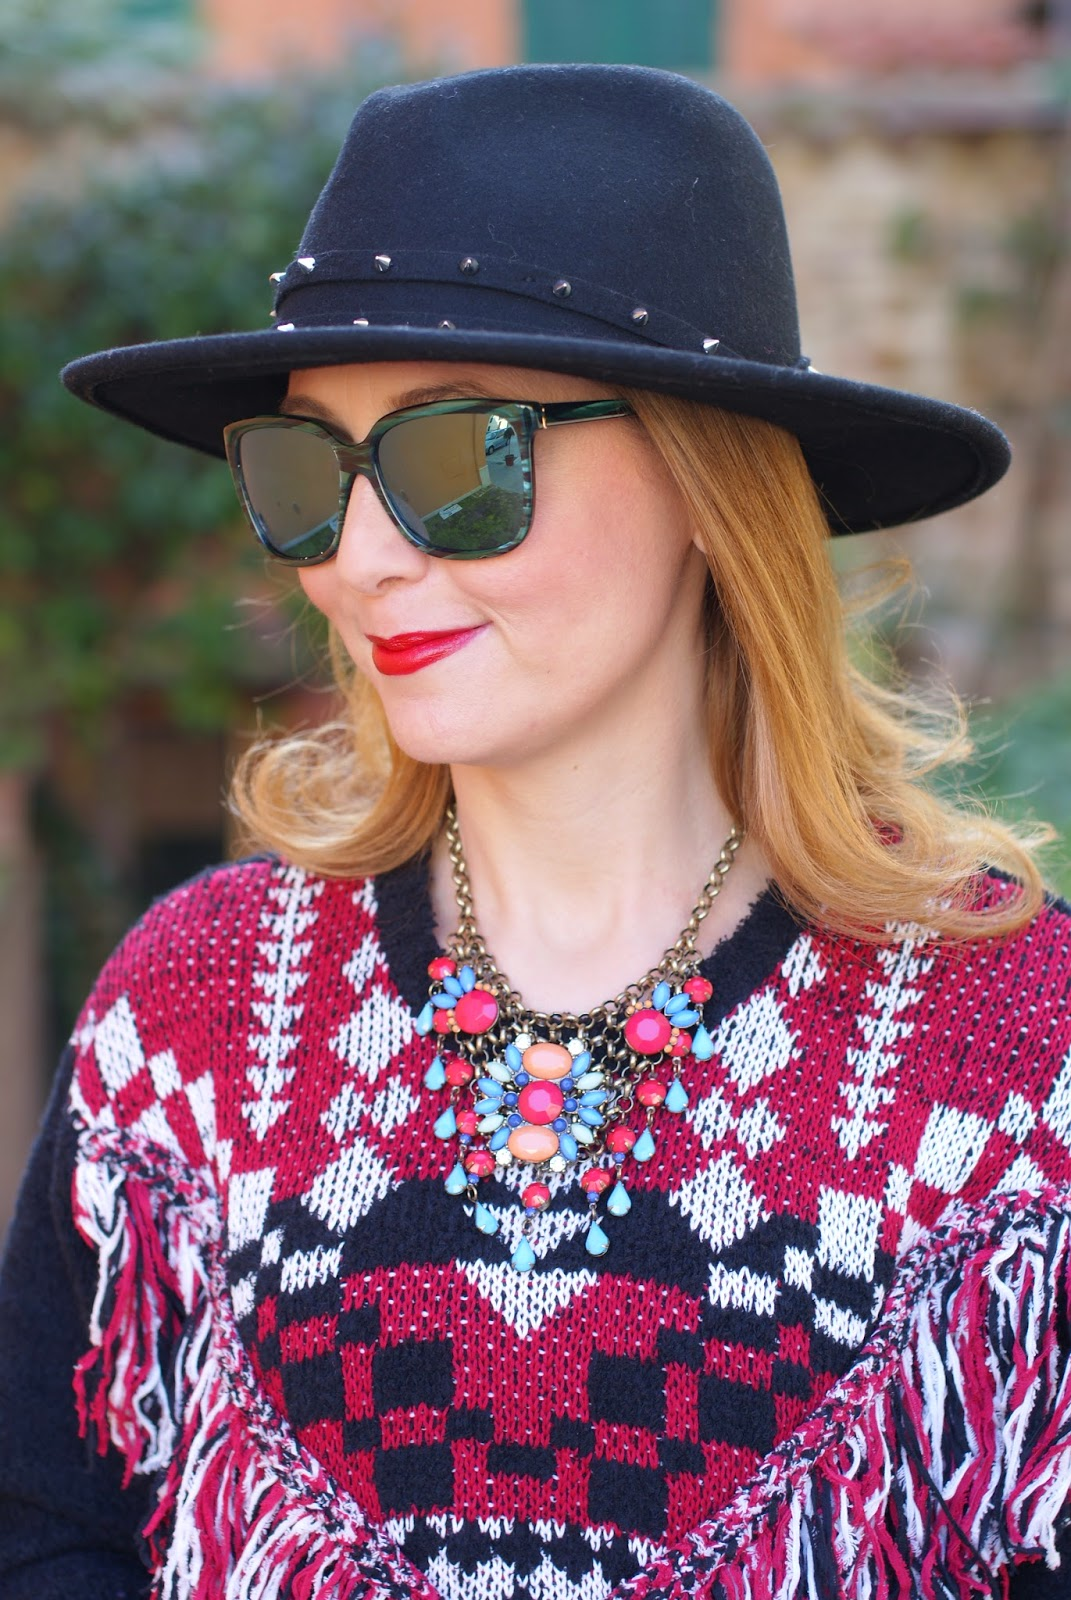 Ethnic fringed sweater from Monki, Hype sunglasses, H&M fedora hat, casual ethic look on Fashion and Cookies fashion blog, fashion blogger